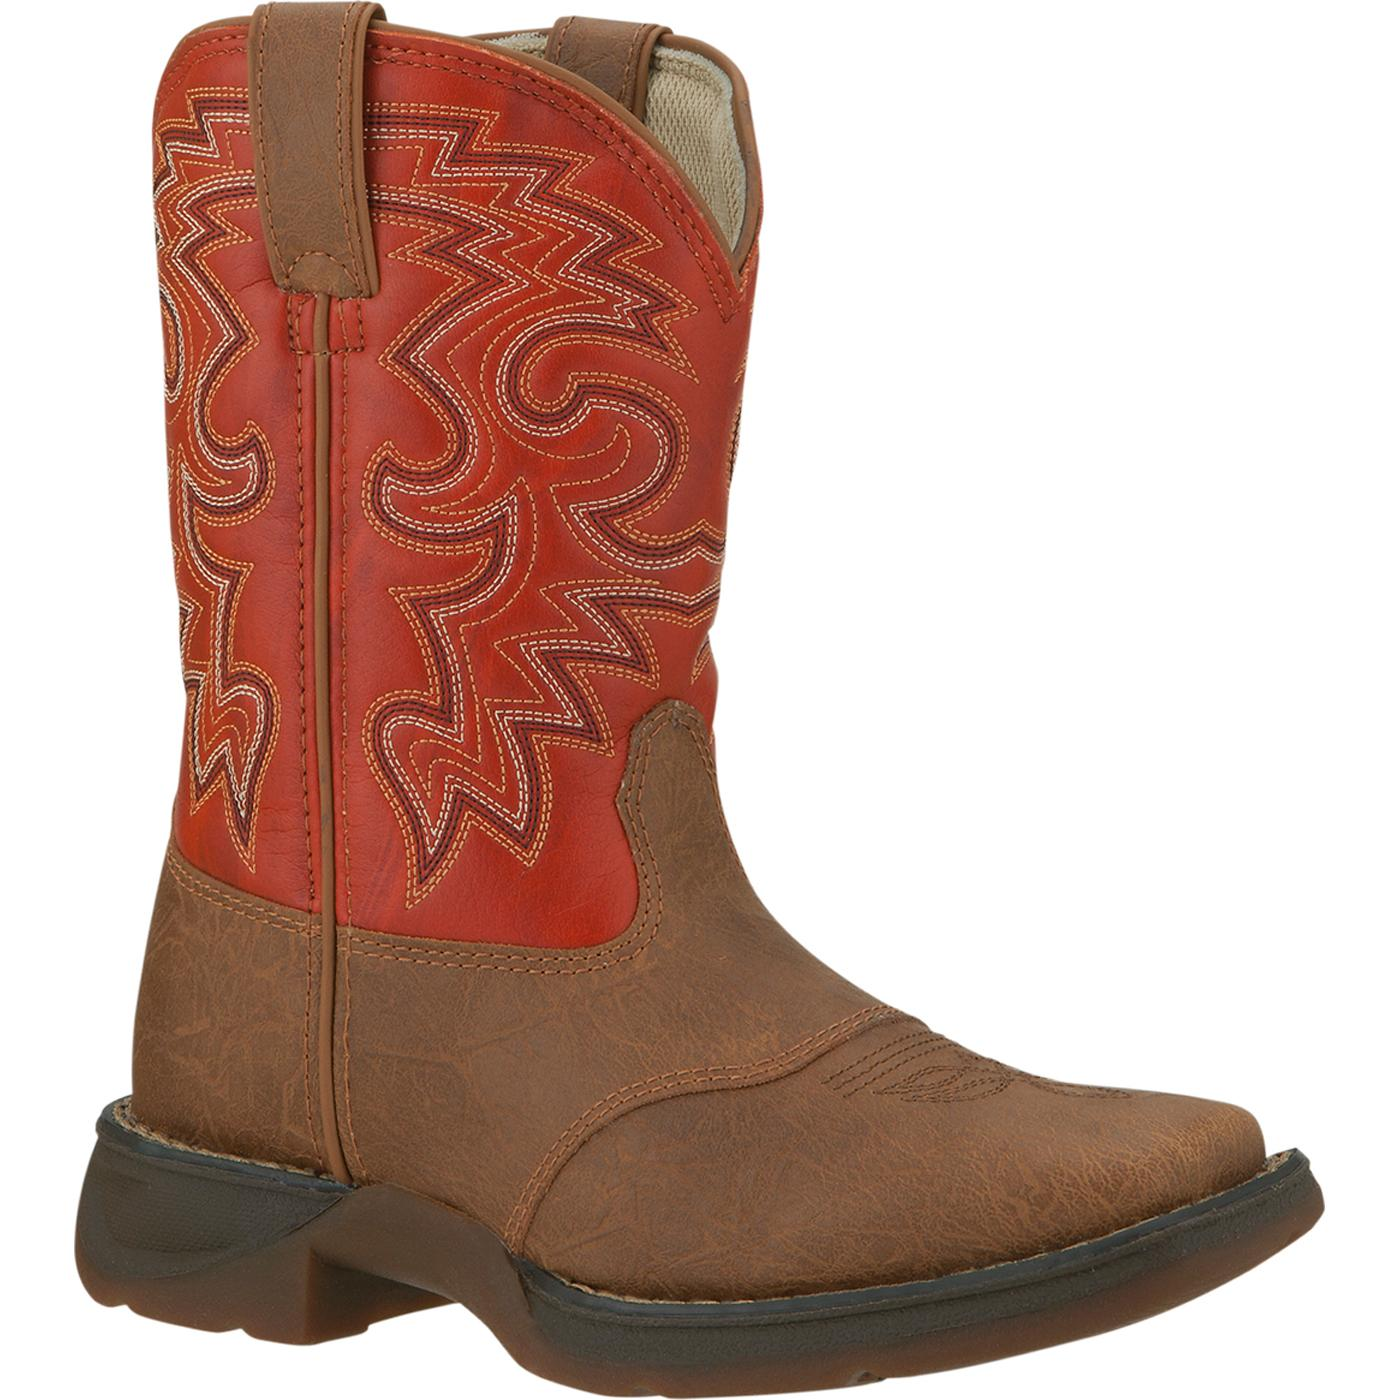 55a24a7b70dd Rebel by Durango Pull-On Western Boot - Style  BT205